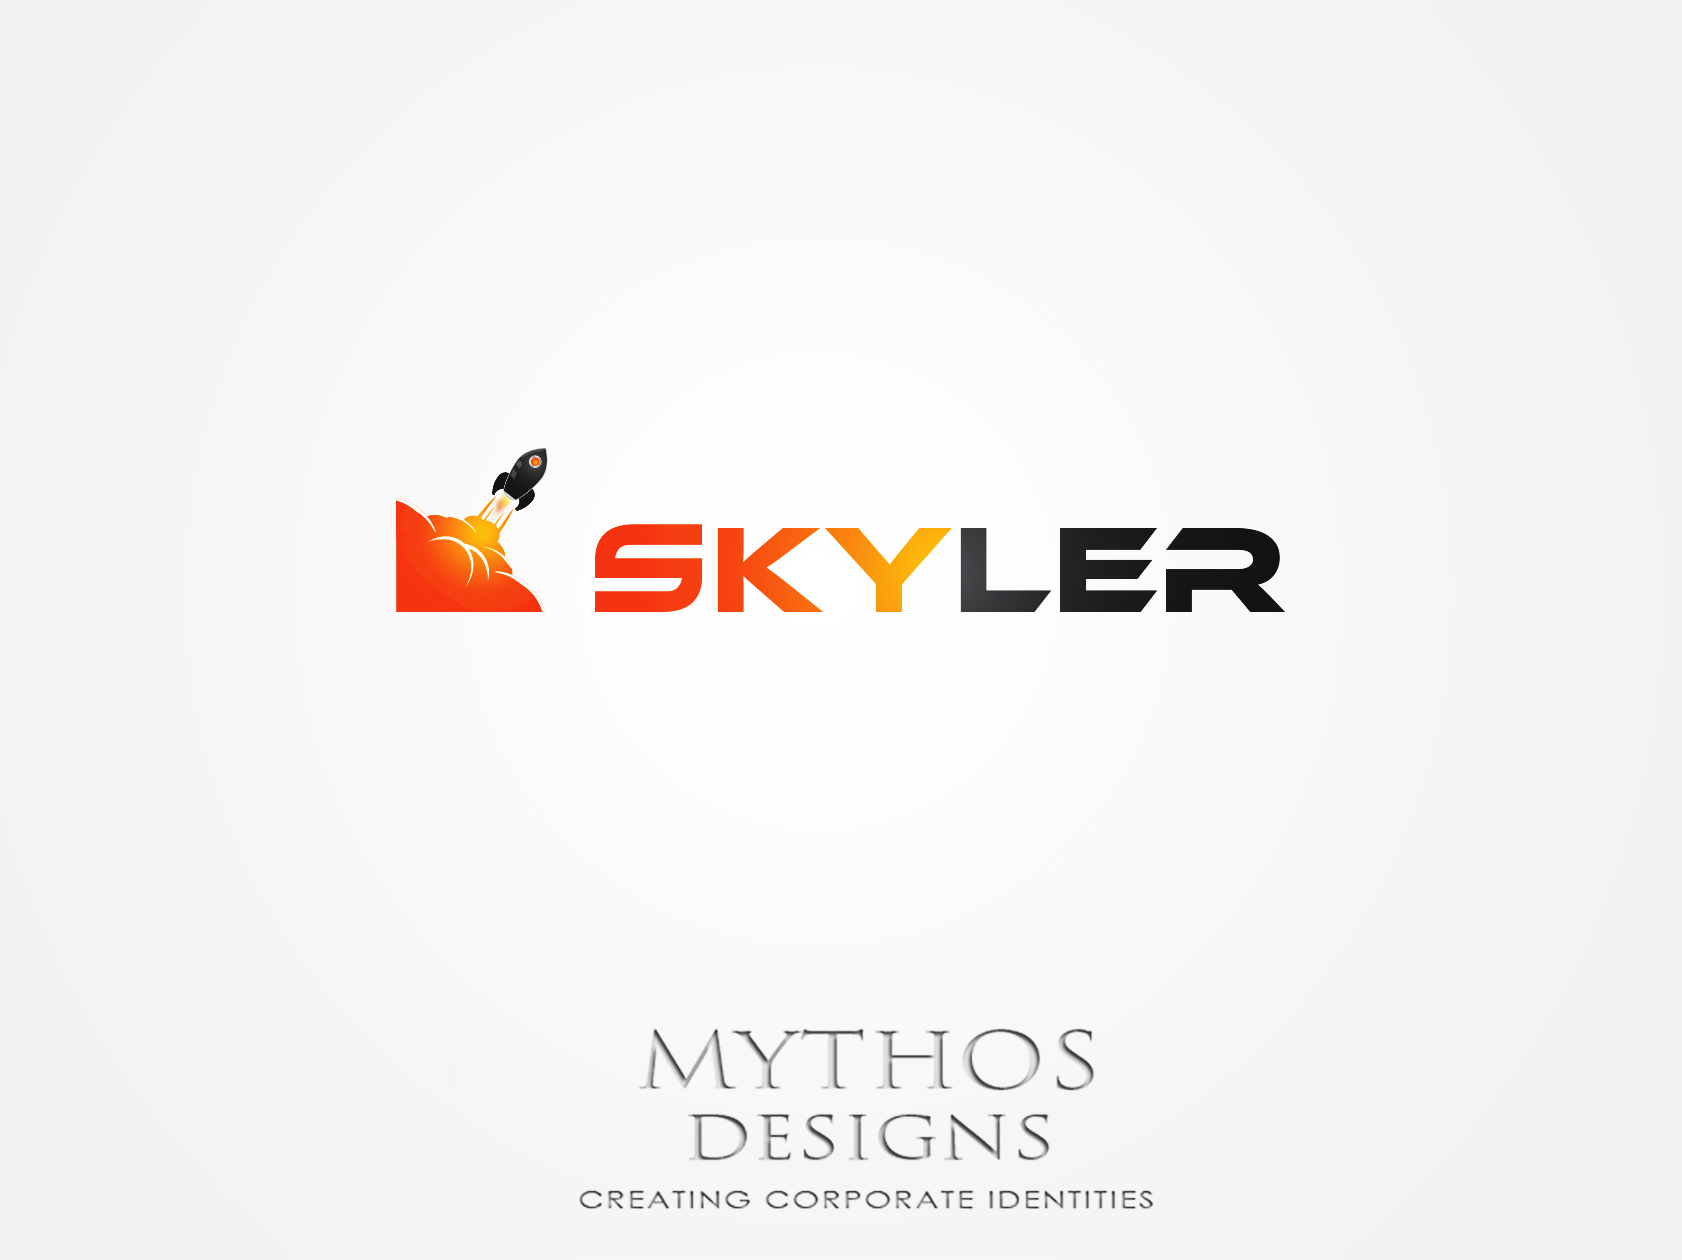 Logo Design by Mythos Designs - Entry No. 99 in the Logo Design Contest Artistic Logo Design for Skyler.Asia.